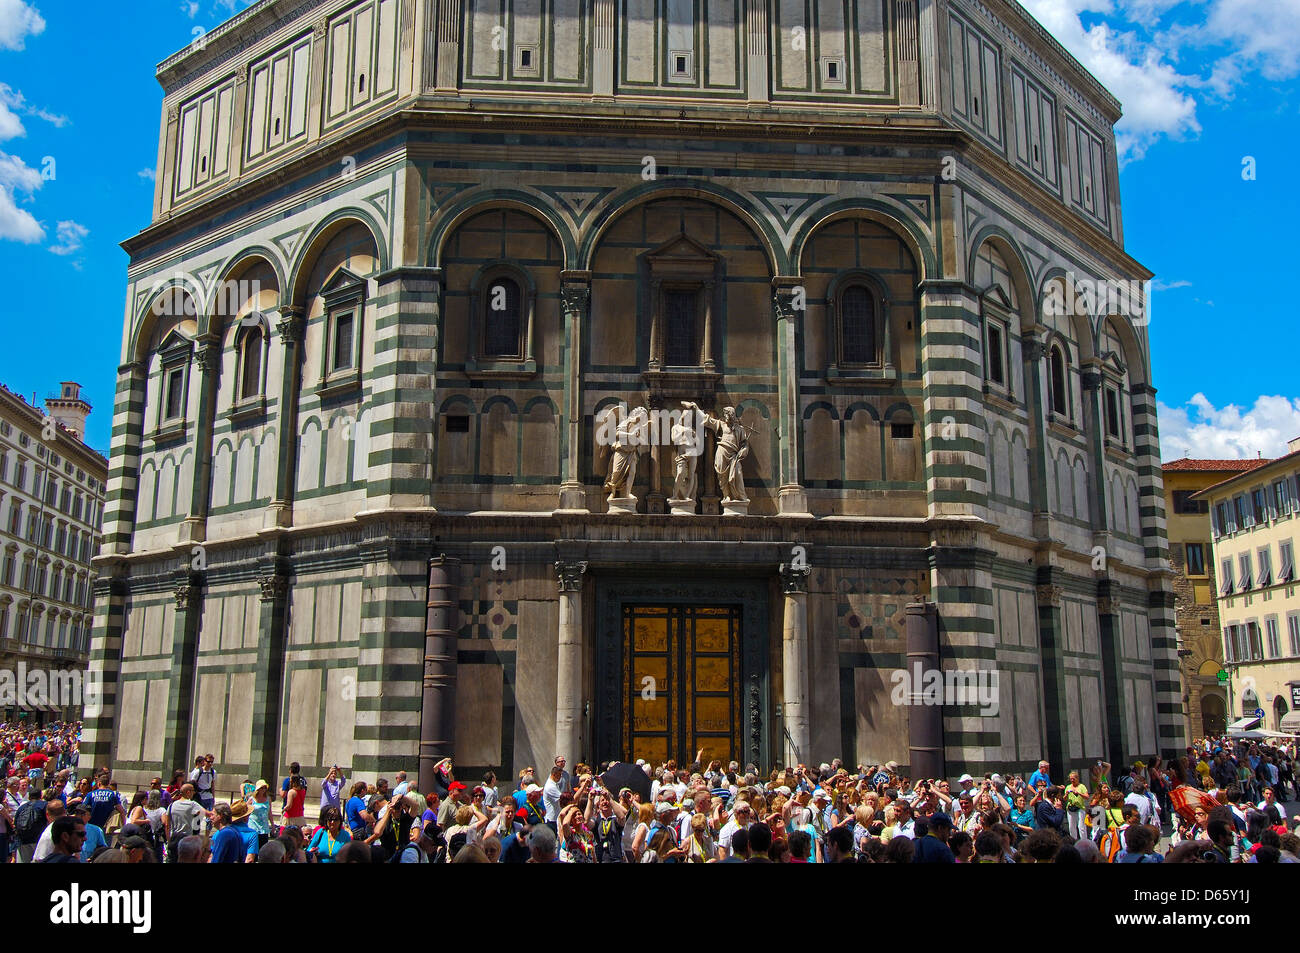 the florence baptistery Visit the florence's duomo complex and enter this historic area with your licensed guide you'll tour the cathedral, the baptistery, and the opera museum see the exterior of giotto's bell tower and climb to the top on your own if you like enjoy a full informative guided tour of florence's .